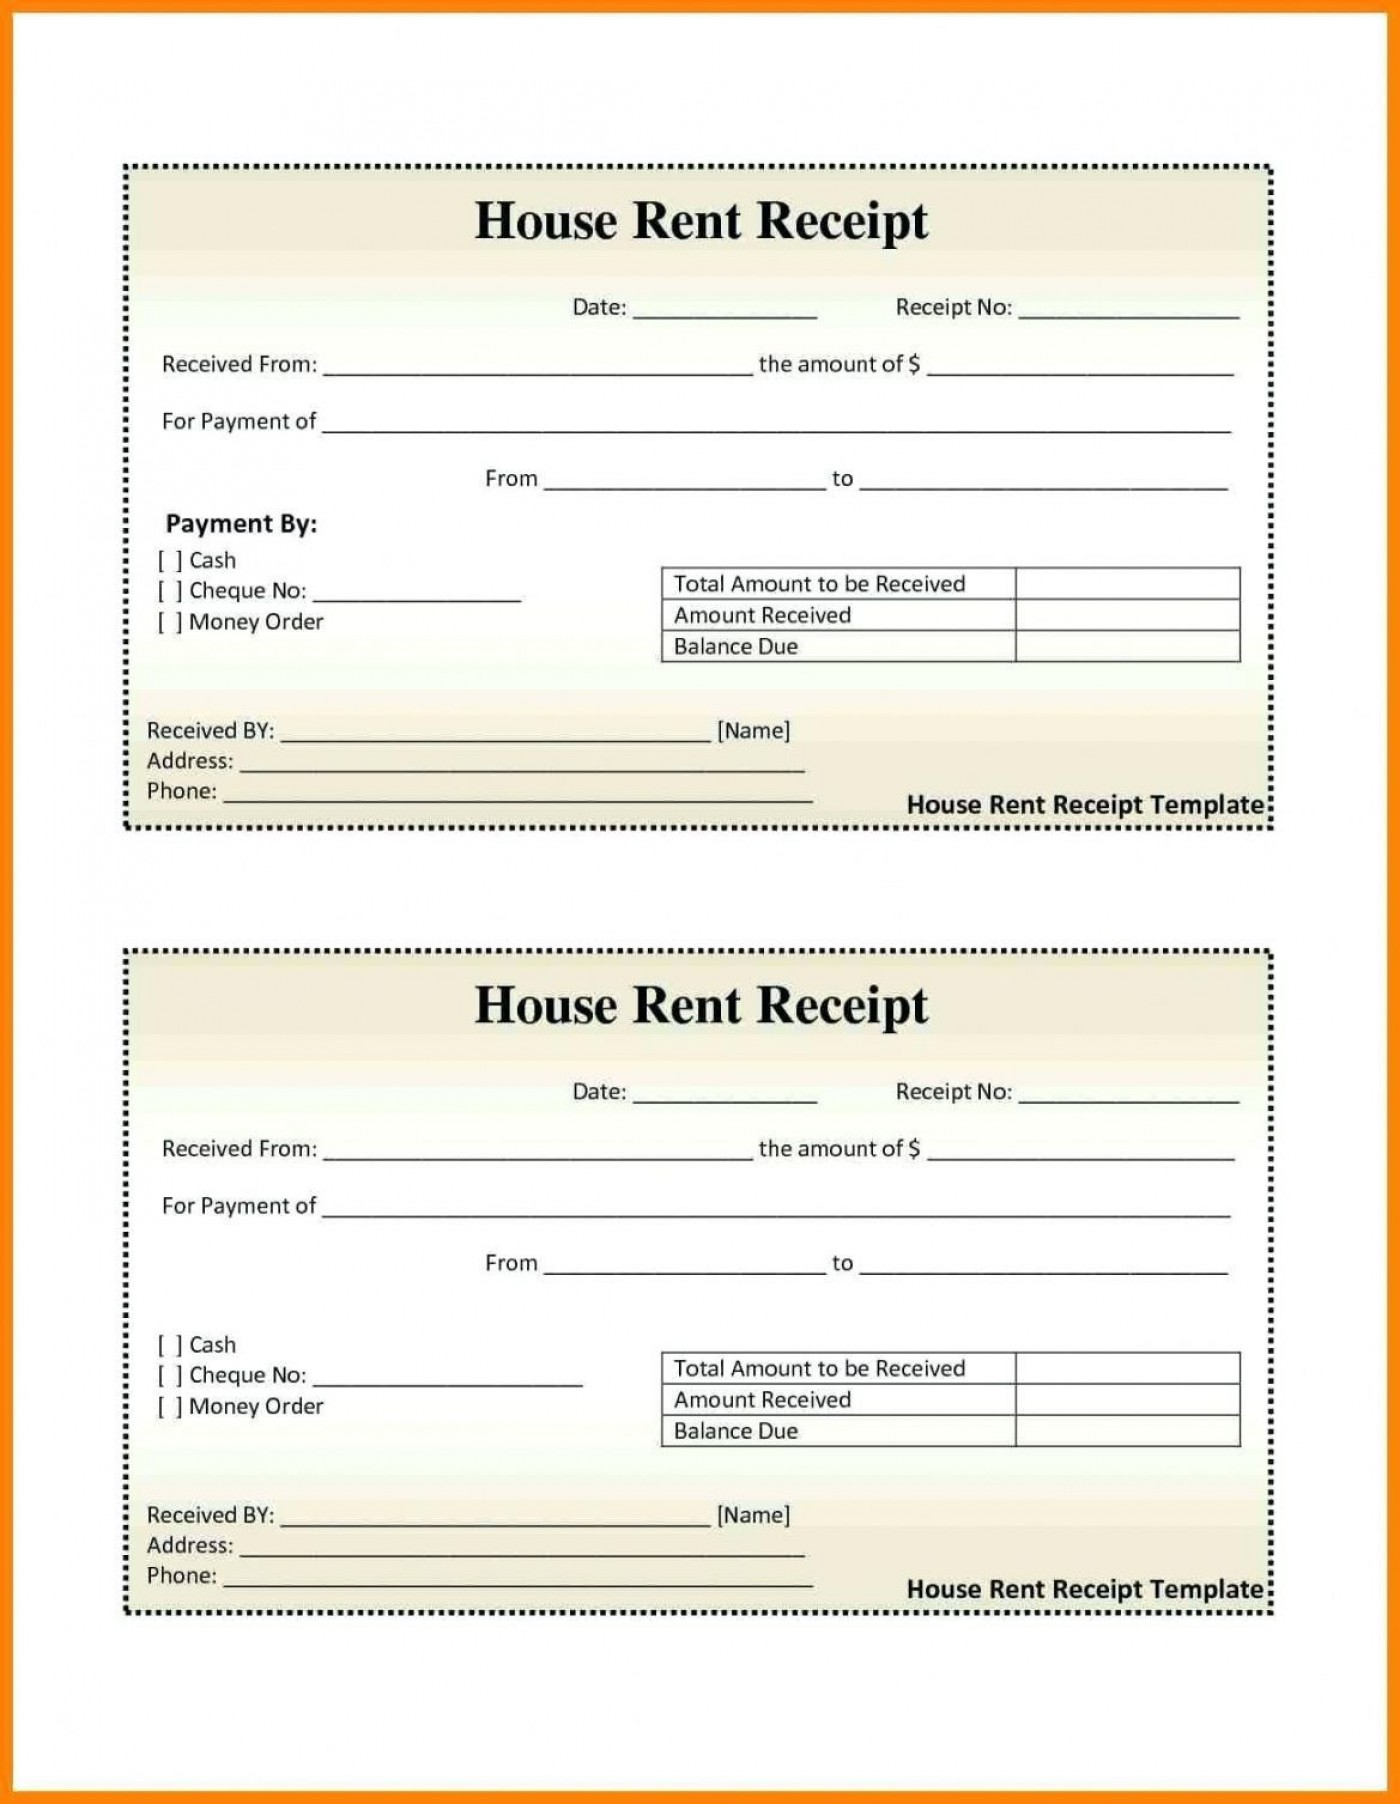 001 Remarkable House Rent Receipt Template India Doc Sample  Format Download1400